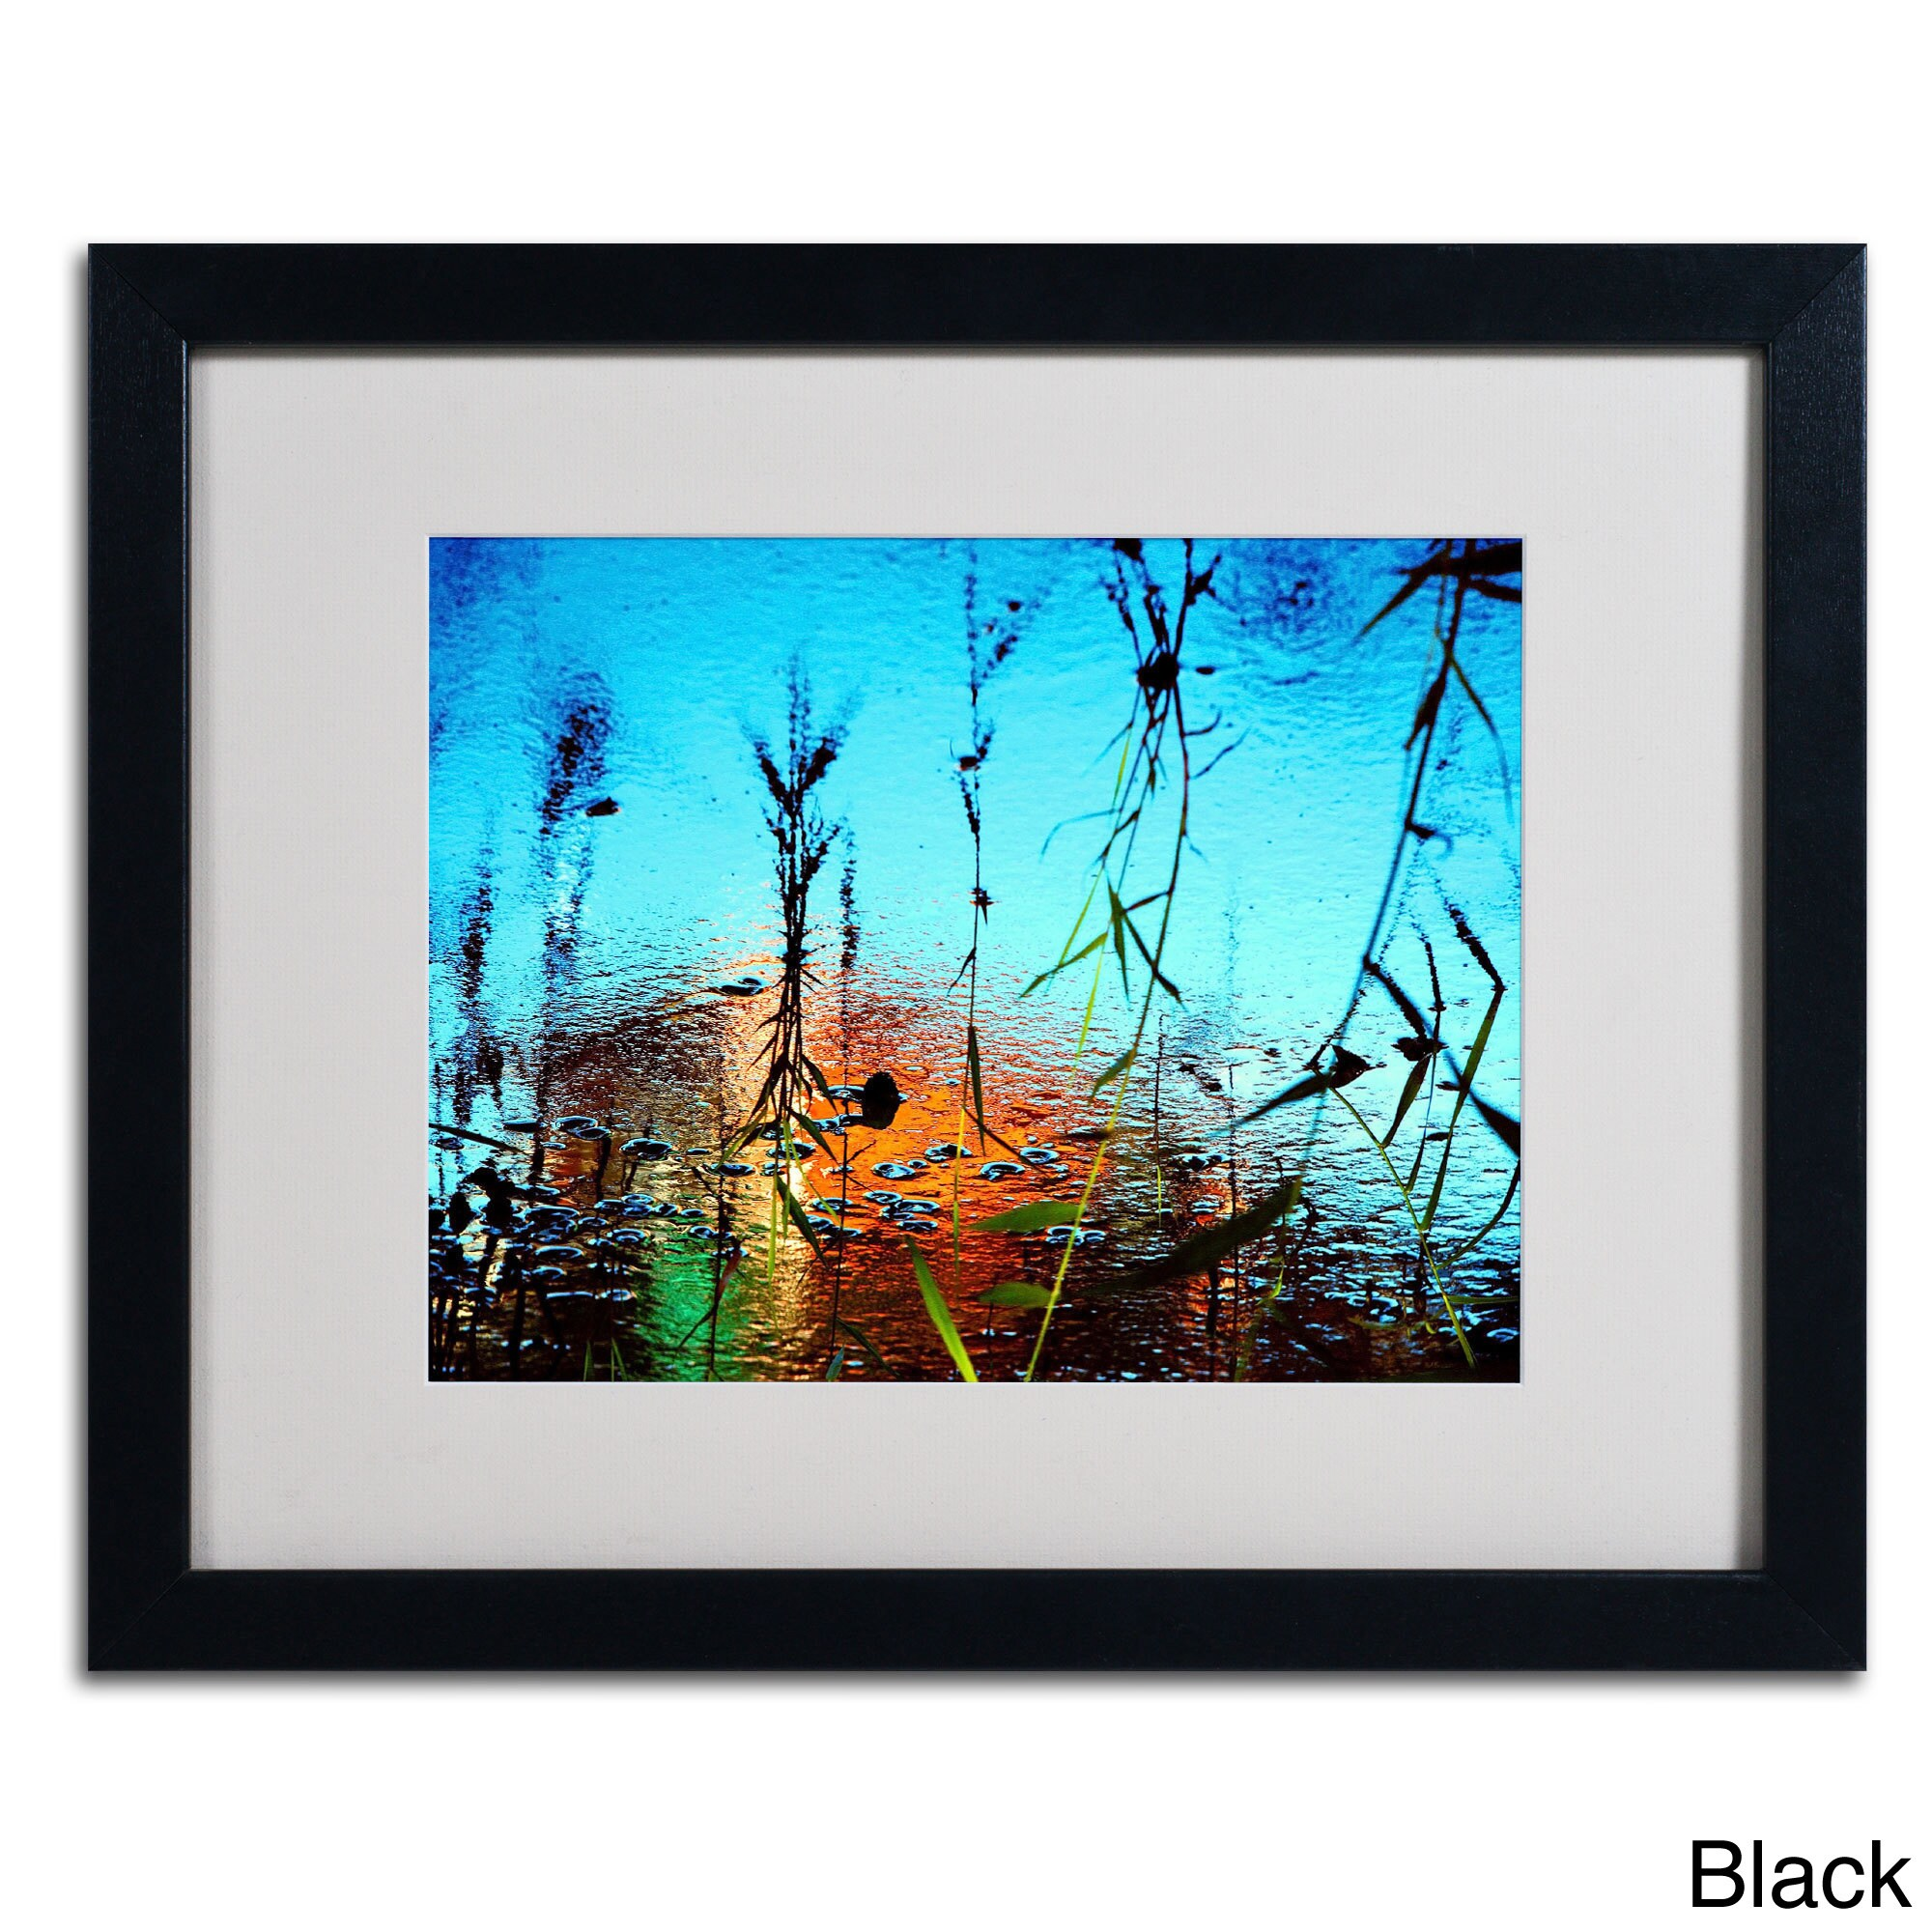 Beata Czyzowska Young 'Painted by Nature' Framed Matted Art